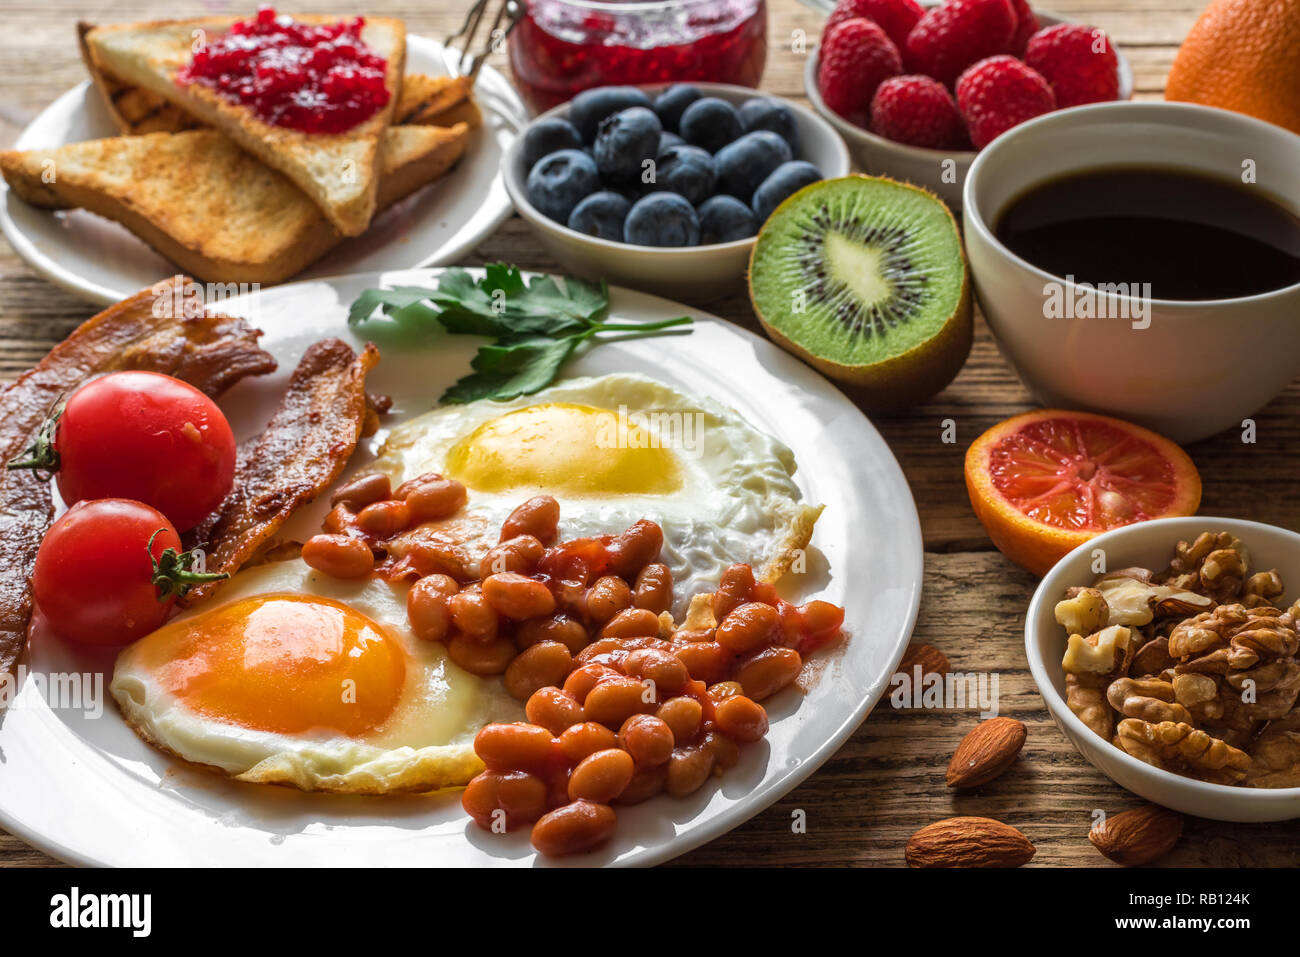 English breakfast. fried egg, beans, tomatoes, coffee, bacon and toast with nuts, fresh fruits and berries. close up - Stock Image